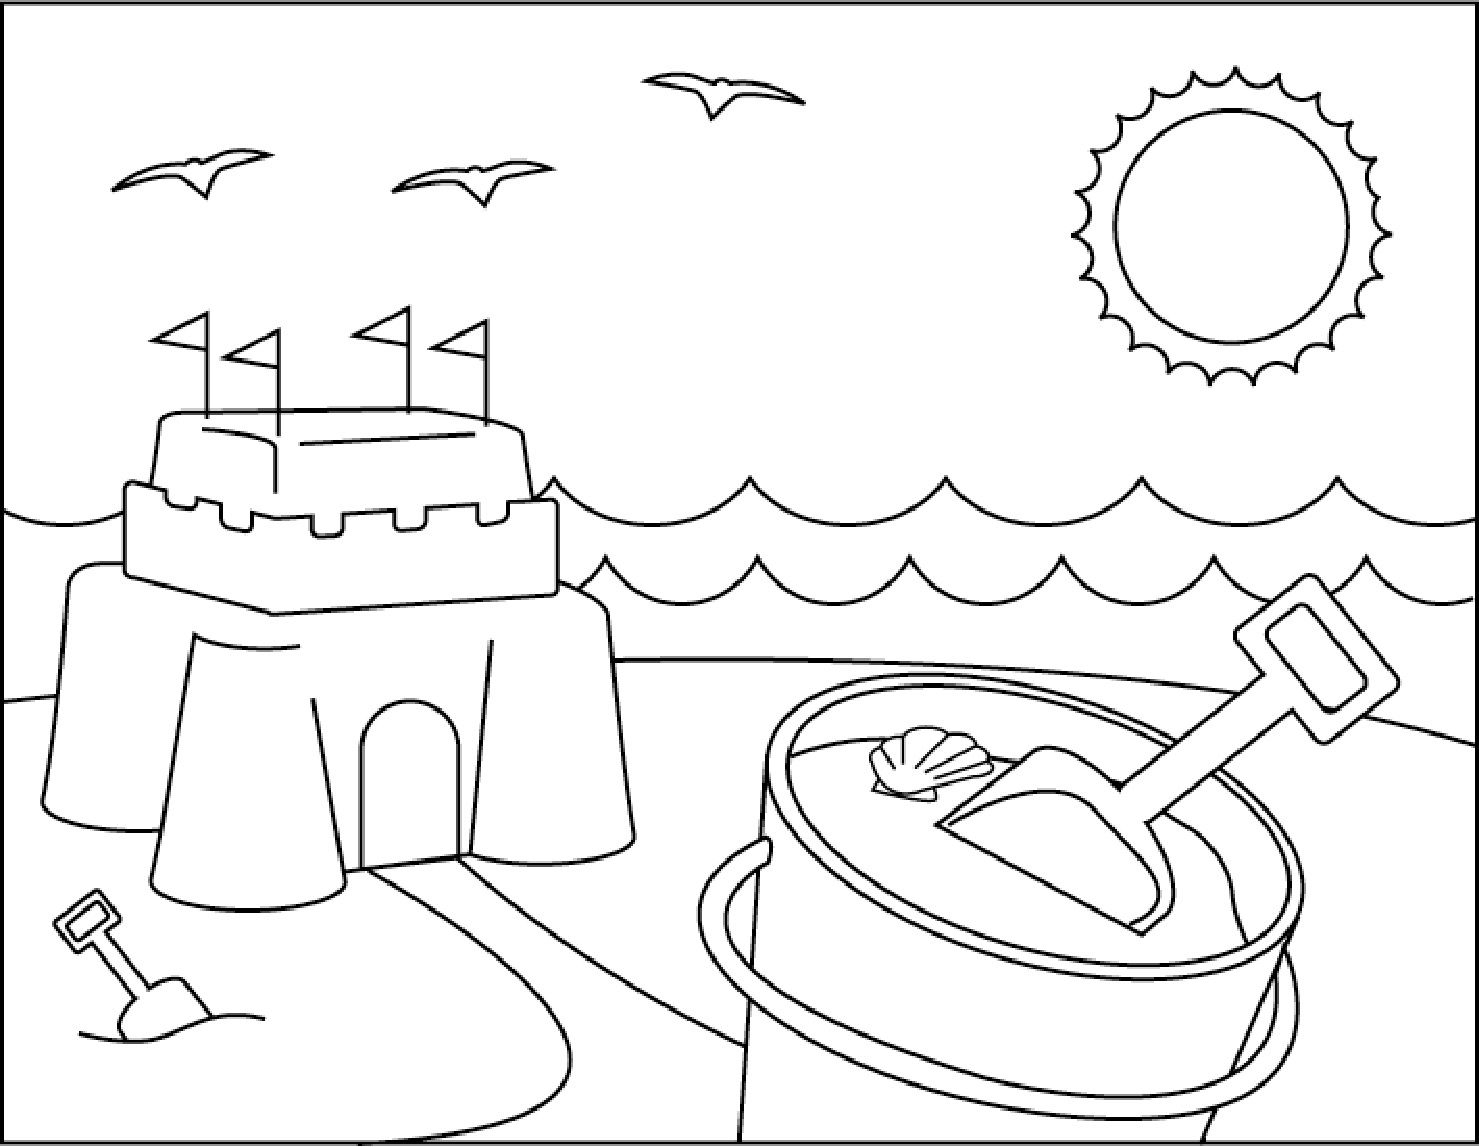 Coloring Pages : Free Printable Summer Coloringnumber Sheets - Free Printable Summer Coloring Pages